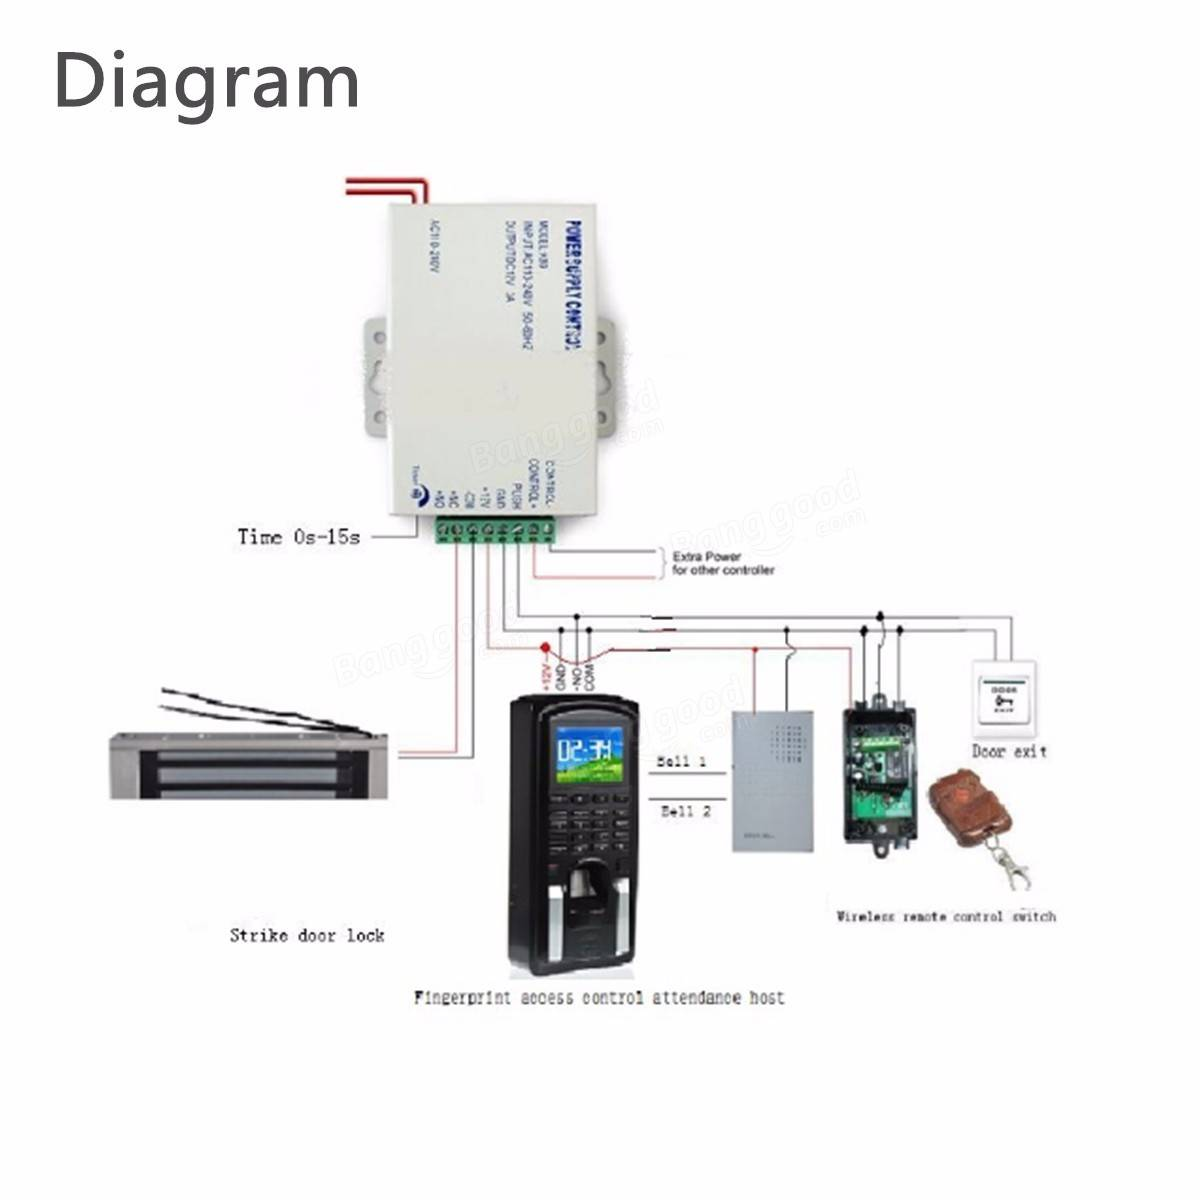 MJPT02 Entry Strike Door Lock Access Control System Bell 20 ID Card Remote Home Office